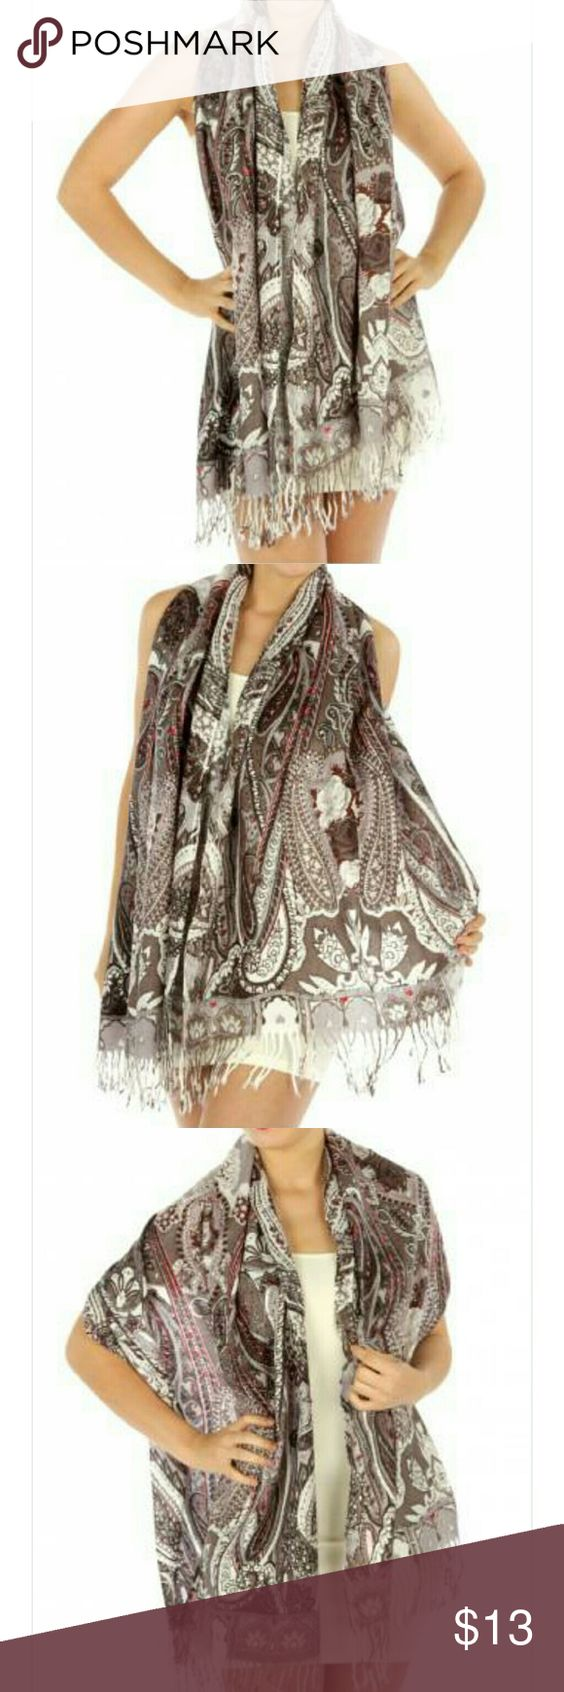 🆕Pashmina Style Scarf/Shawl Gorgeous woven scarf can also be used as a shawl. Features a Paisley floral print and fringed hems.   Acrylic  Size 28x78 inches Accessories Scarves & Wraps